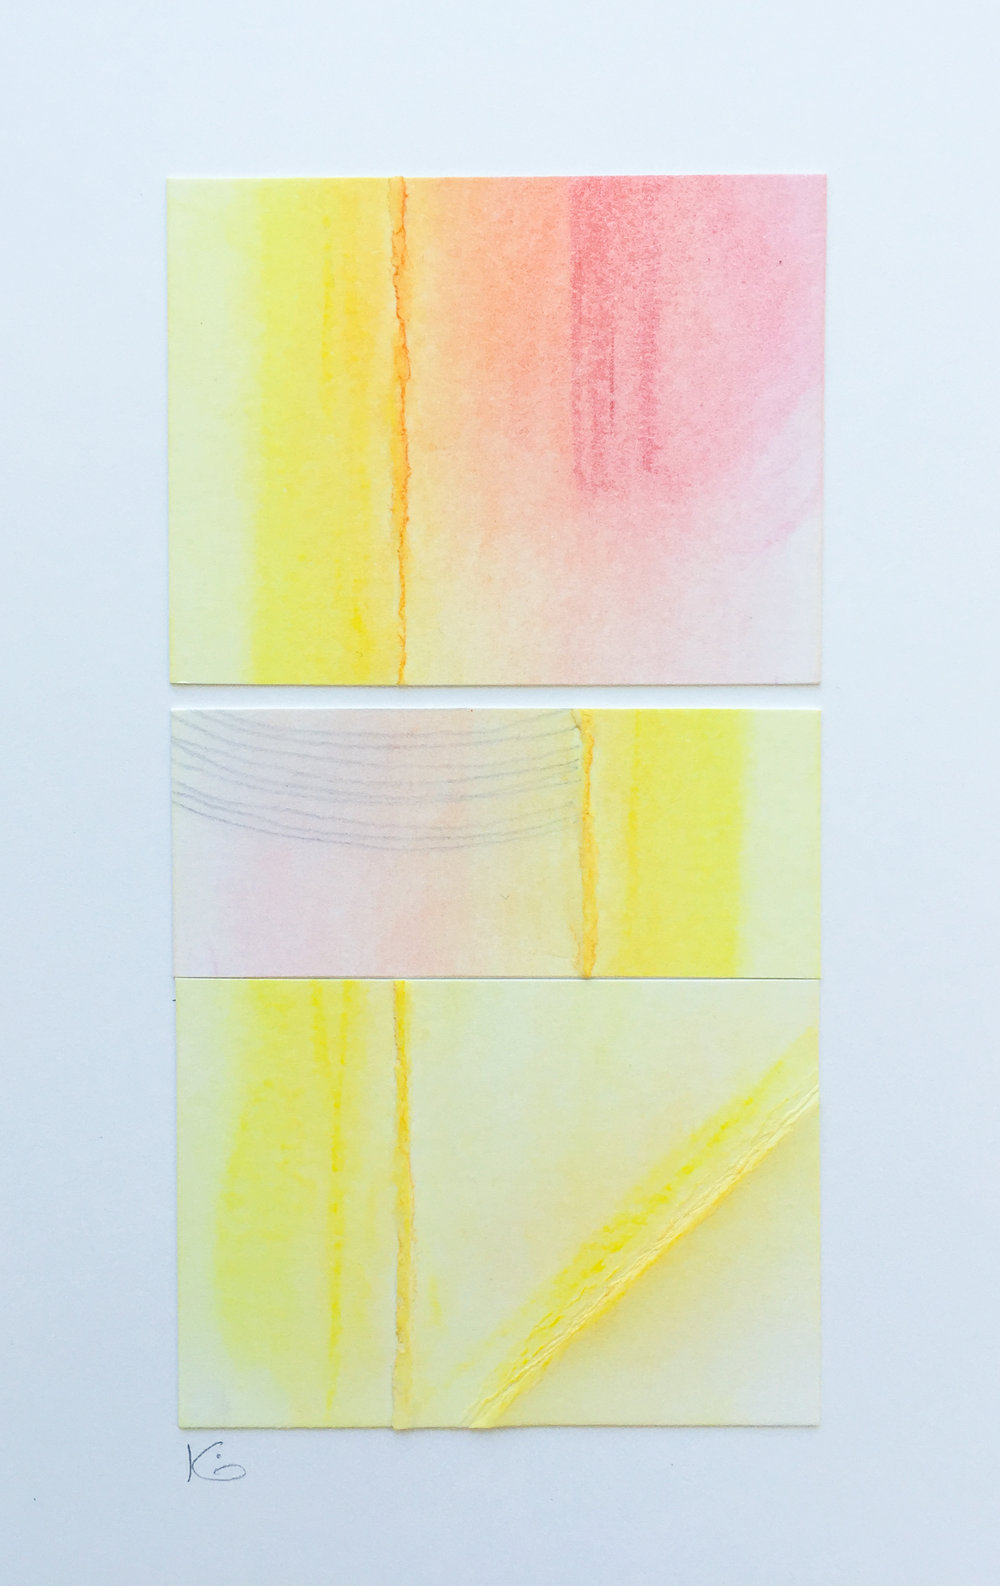 Sunrise.  Collaged folded bristol, pastels, pencil. 2.25 x 4.5 inches on 9 x 12 inch bristol. 2016. Karen Anne Glick